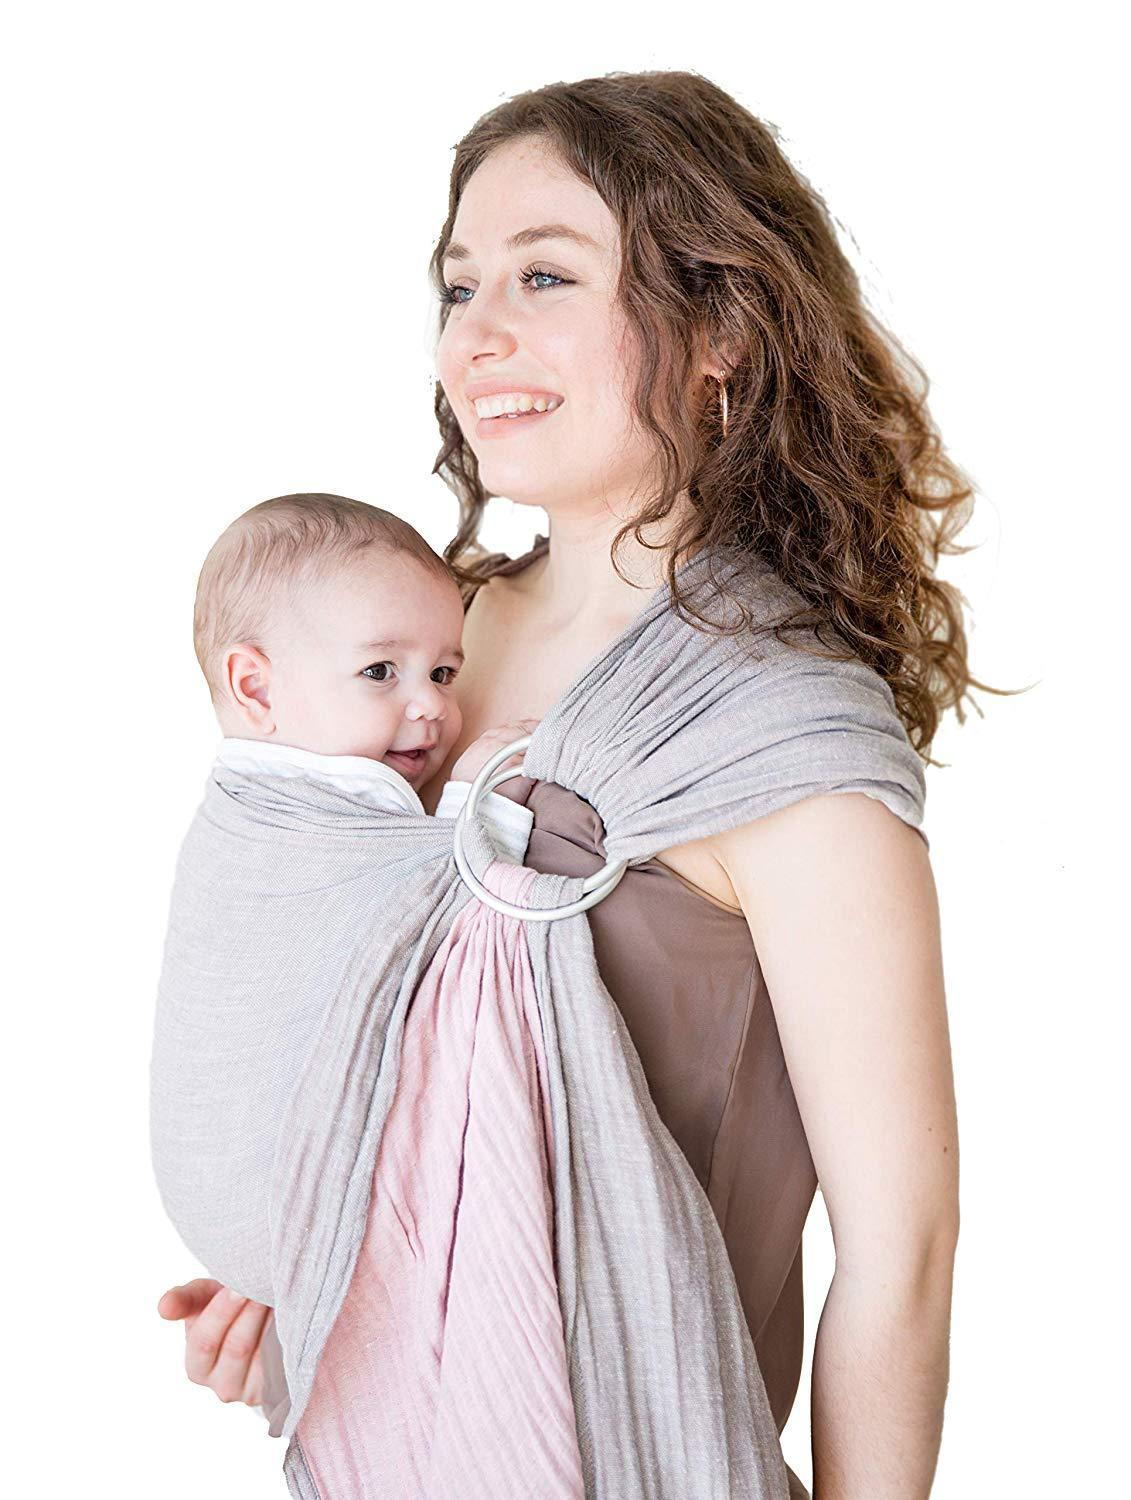 Mebien, Touche de La Nature's Extra Soft Turkish Cotton Muslin Baby Slings